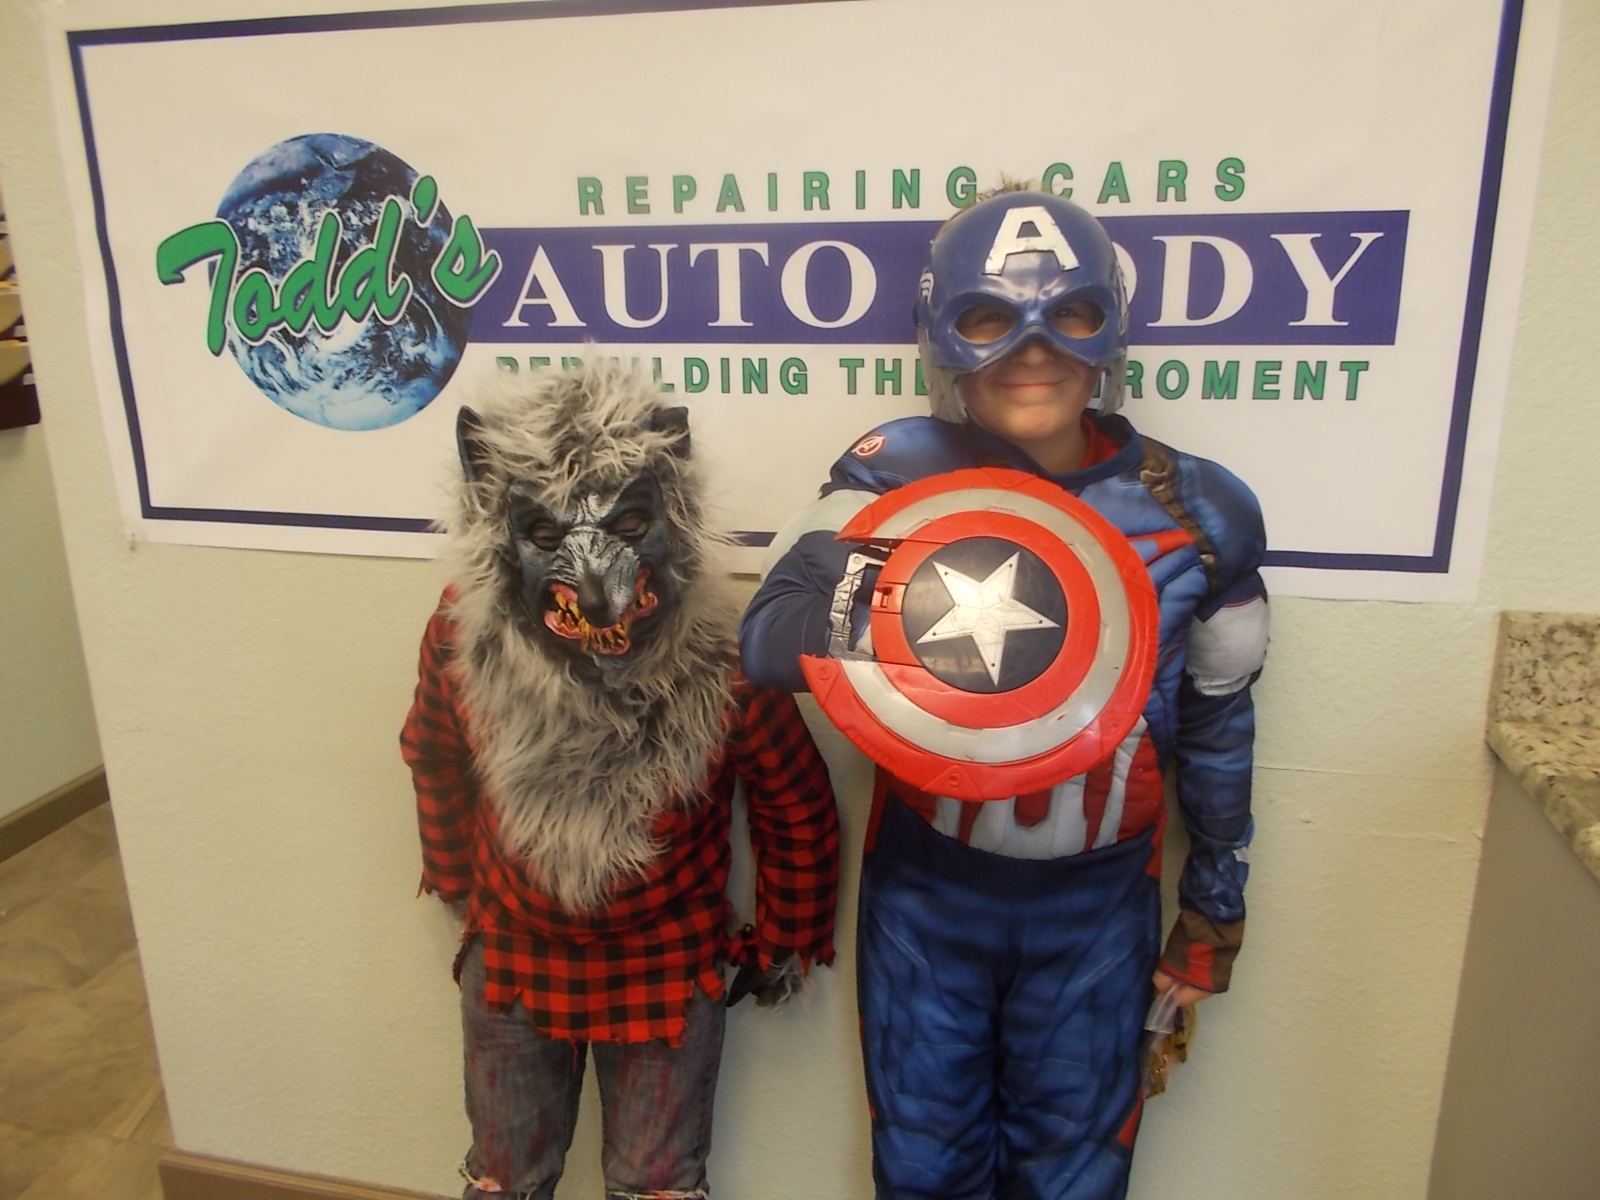 Halloween Pics from Todd's Auto Body